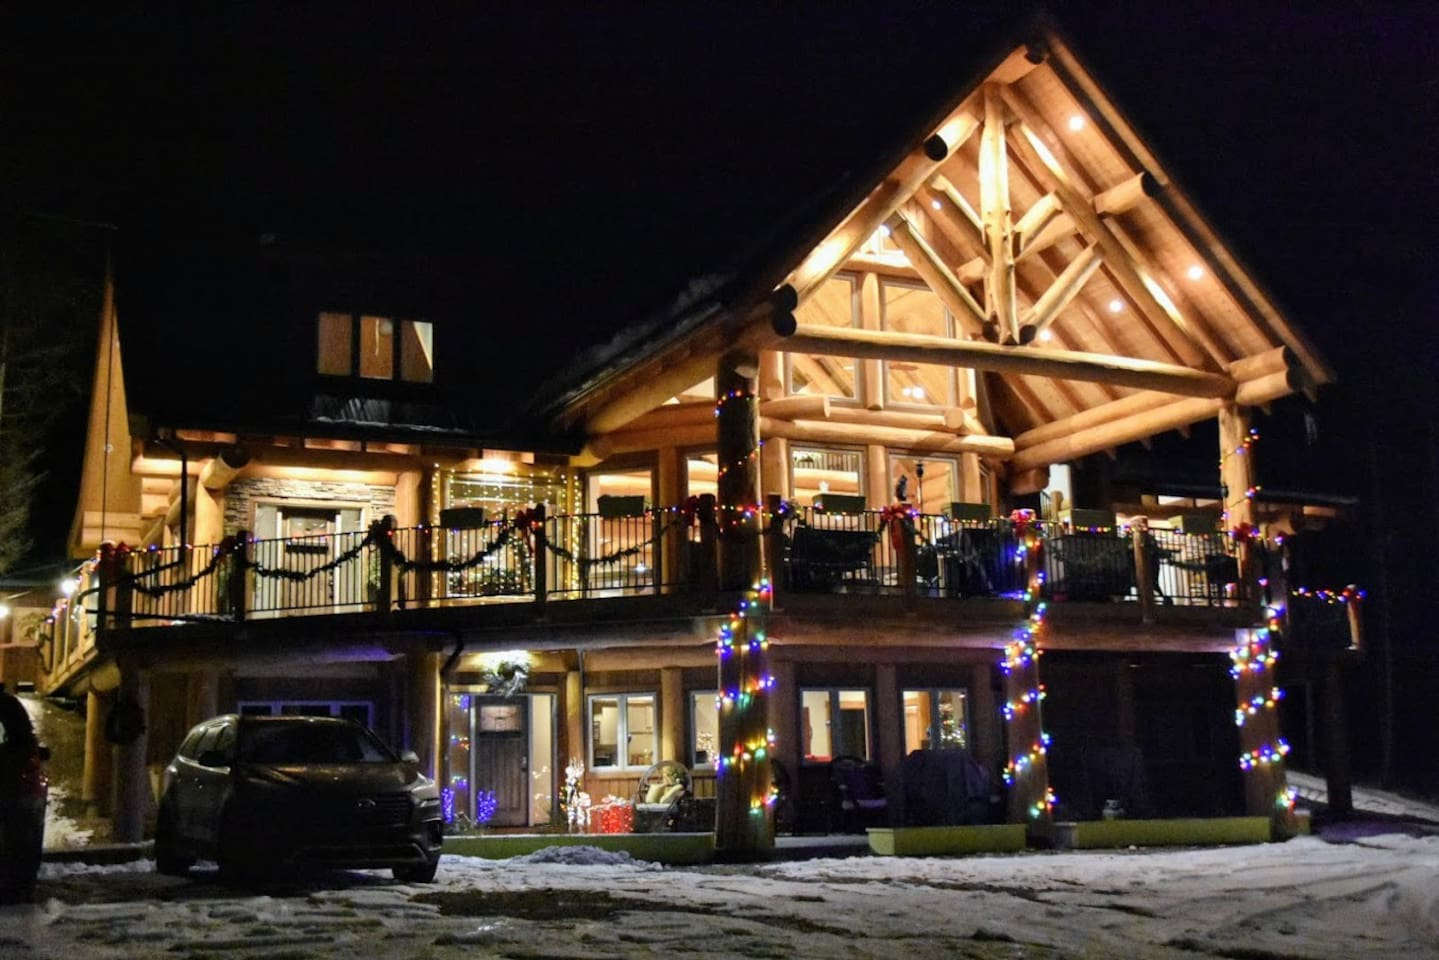 The lodge decorated for Christmas is beautiful!  Truly a rocky mountain Christmas.